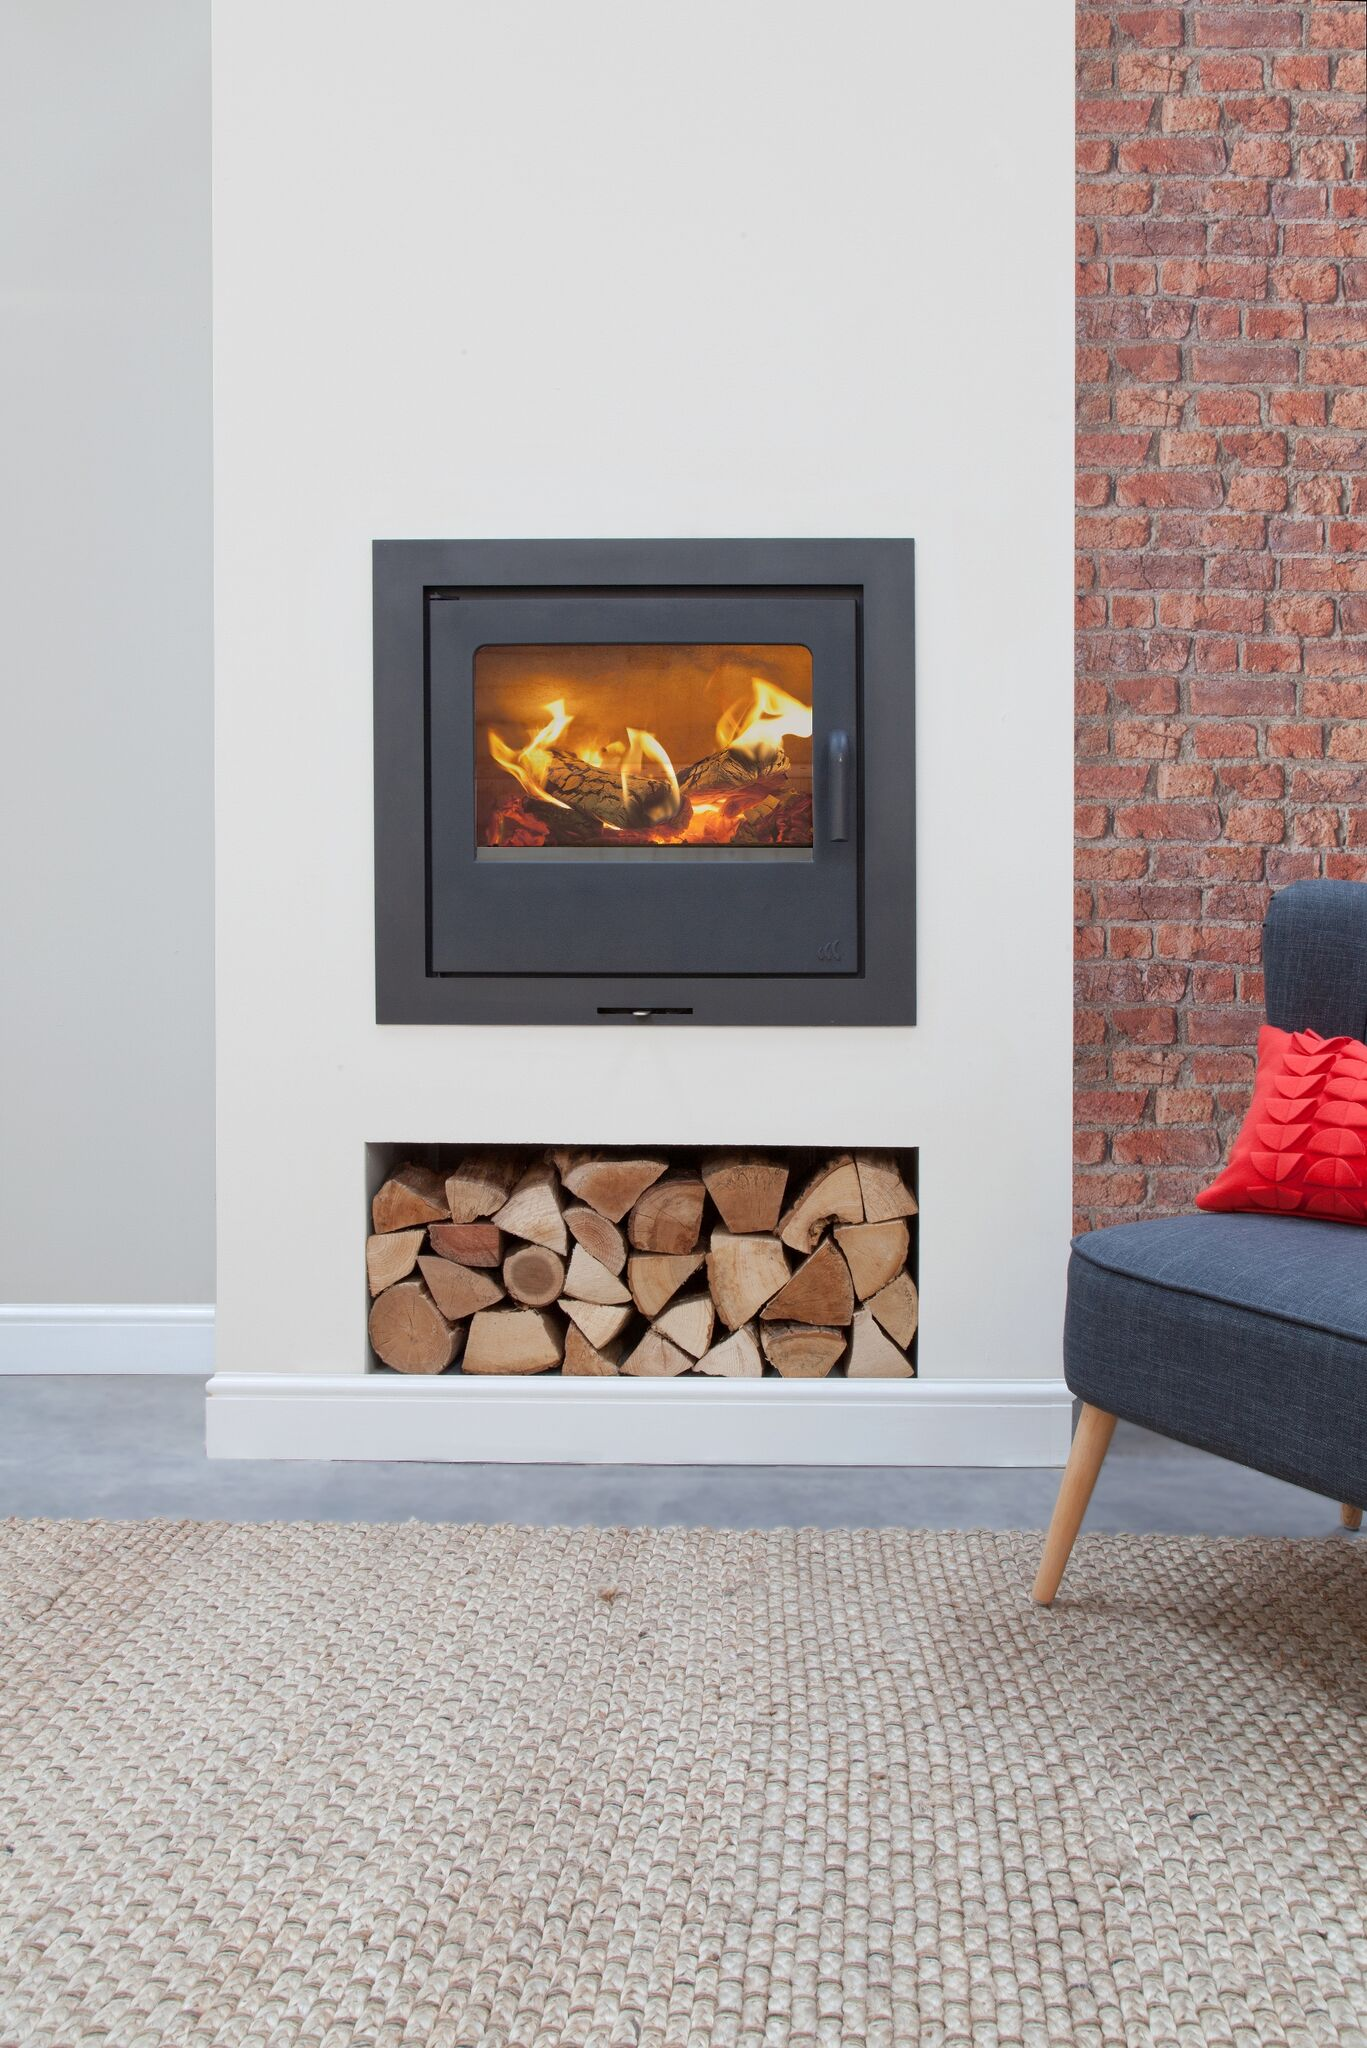 Loxton inset, freestanding, granite hearth, slate hearth, woodburning, multifuel, Bangor, Newtownards, Belfast, Holywood, Conlig, Stove yard, Fireplaces, flue pipe, hearths, room heater, wilsons, Portaferry, Kircubbin, Greyabbey, riven slate, wooden beans, fireplace beams, fire chambers, open fires, logs, coal, grates, stove glass, grate bars, ards fireplaces, Jubilee Road, Helensbay, Crawfordsburn, flexi flue, chimney cowls, down draught cowls, gas, natural gas, reflex 75T, log effect fire, Gazco, stovax, medip, arada, varde, Henley, hunter, yeoman, inset stove